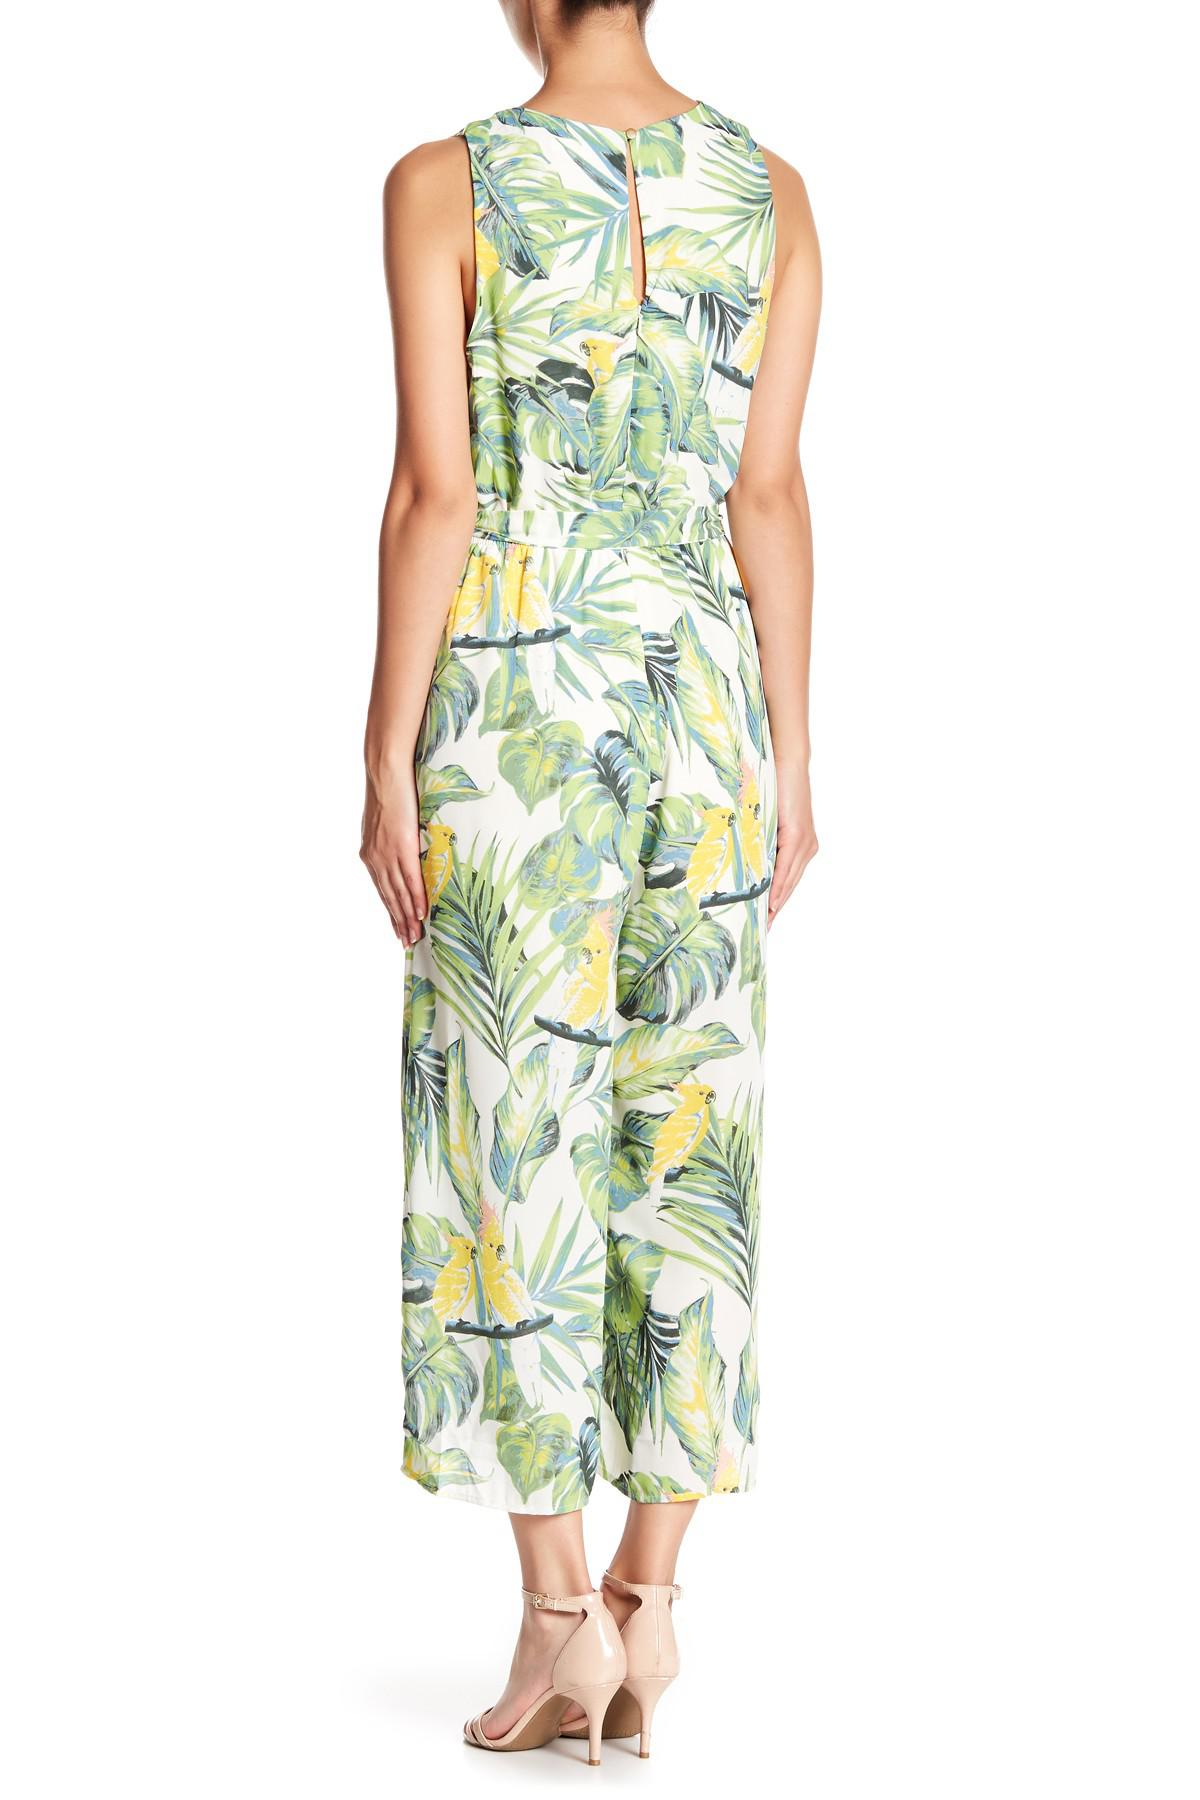 884f4548a22a Lyst - June   Hudson Printed Jumpsuit in Green